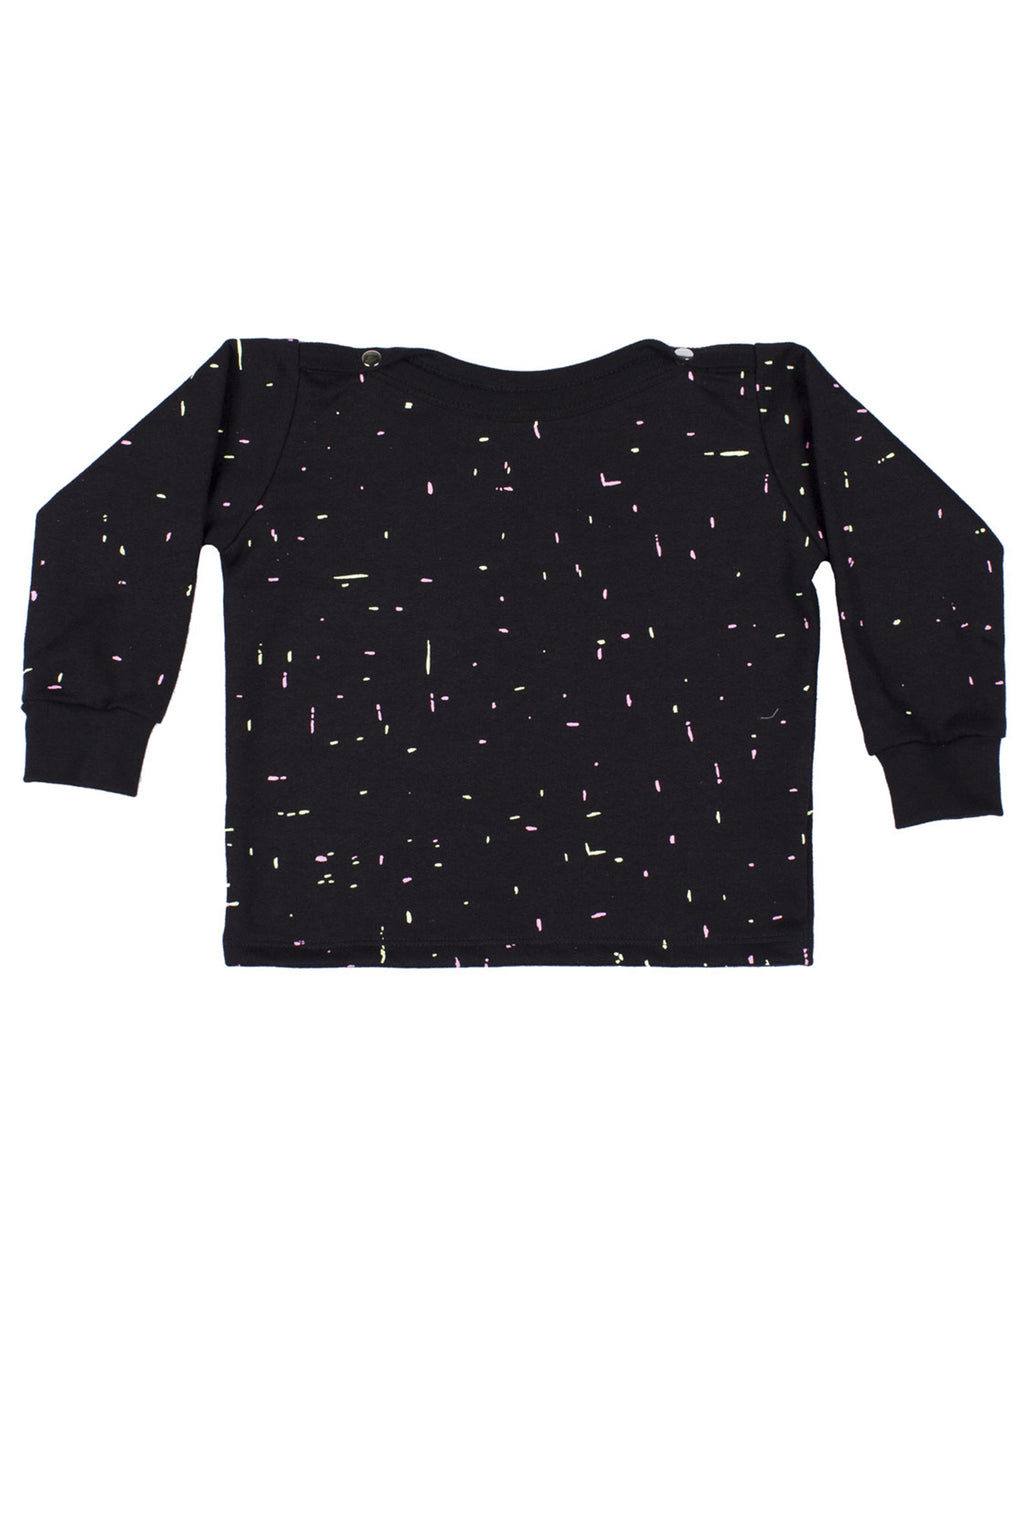 Speckle Baby Sweater Black - Zuttion